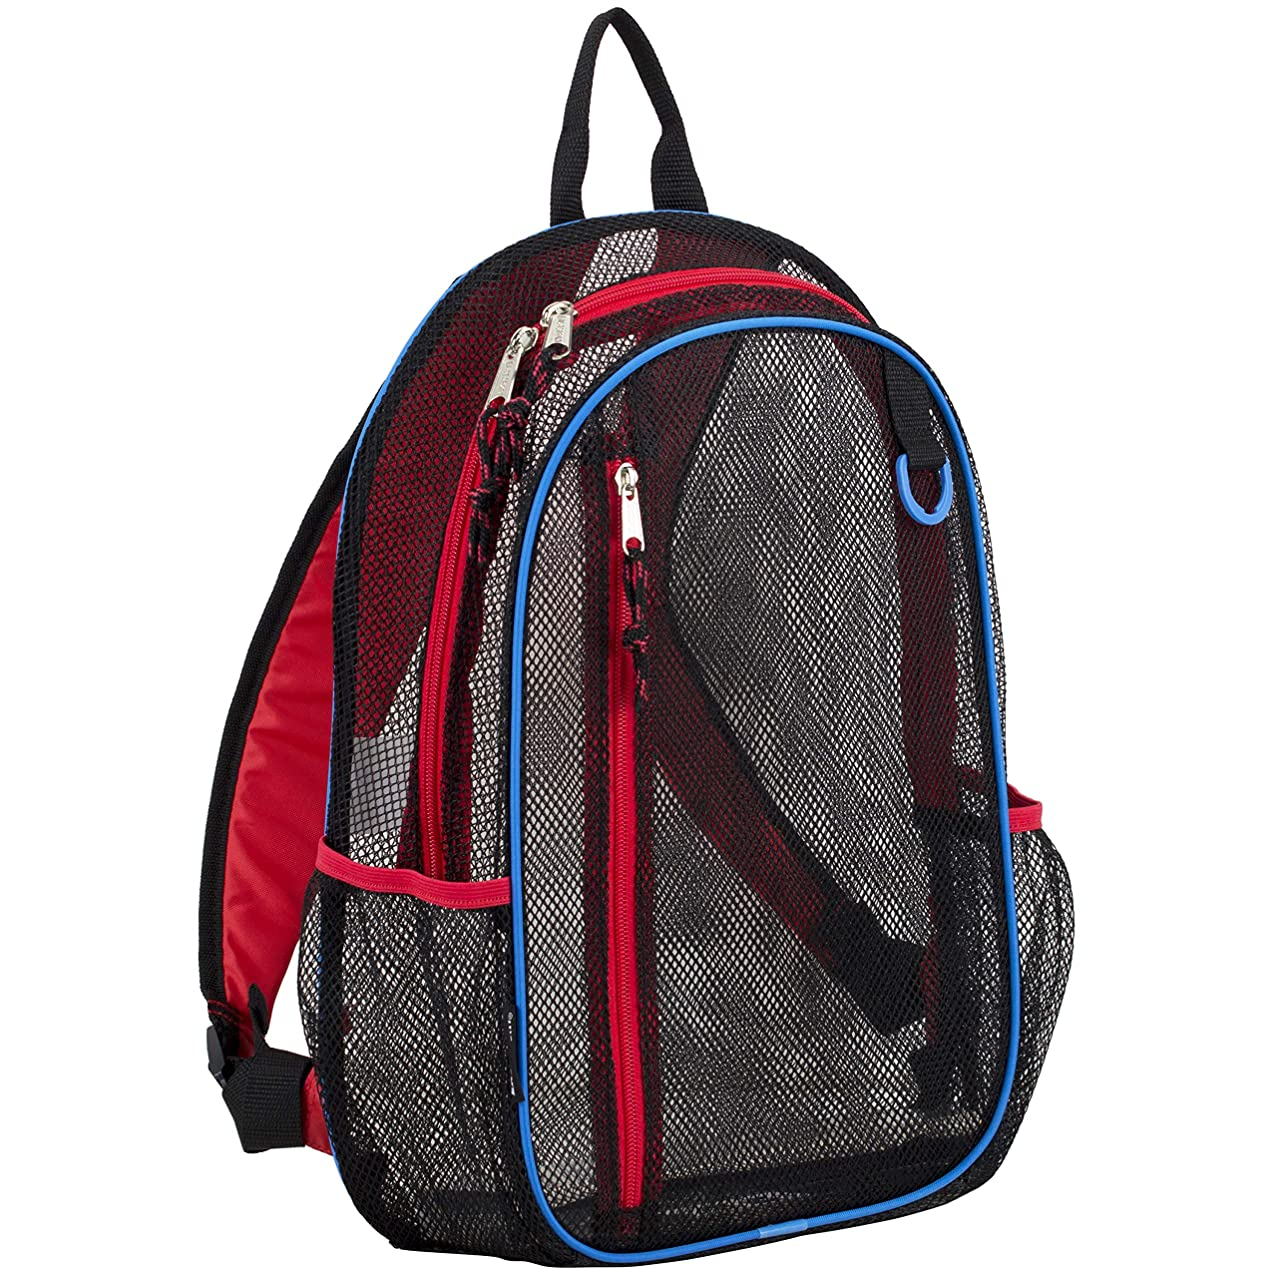 Eastsport Active Mesh Backpack with Padded Adjustable Straps, Black/Poppy Red/Royal Blue Trim